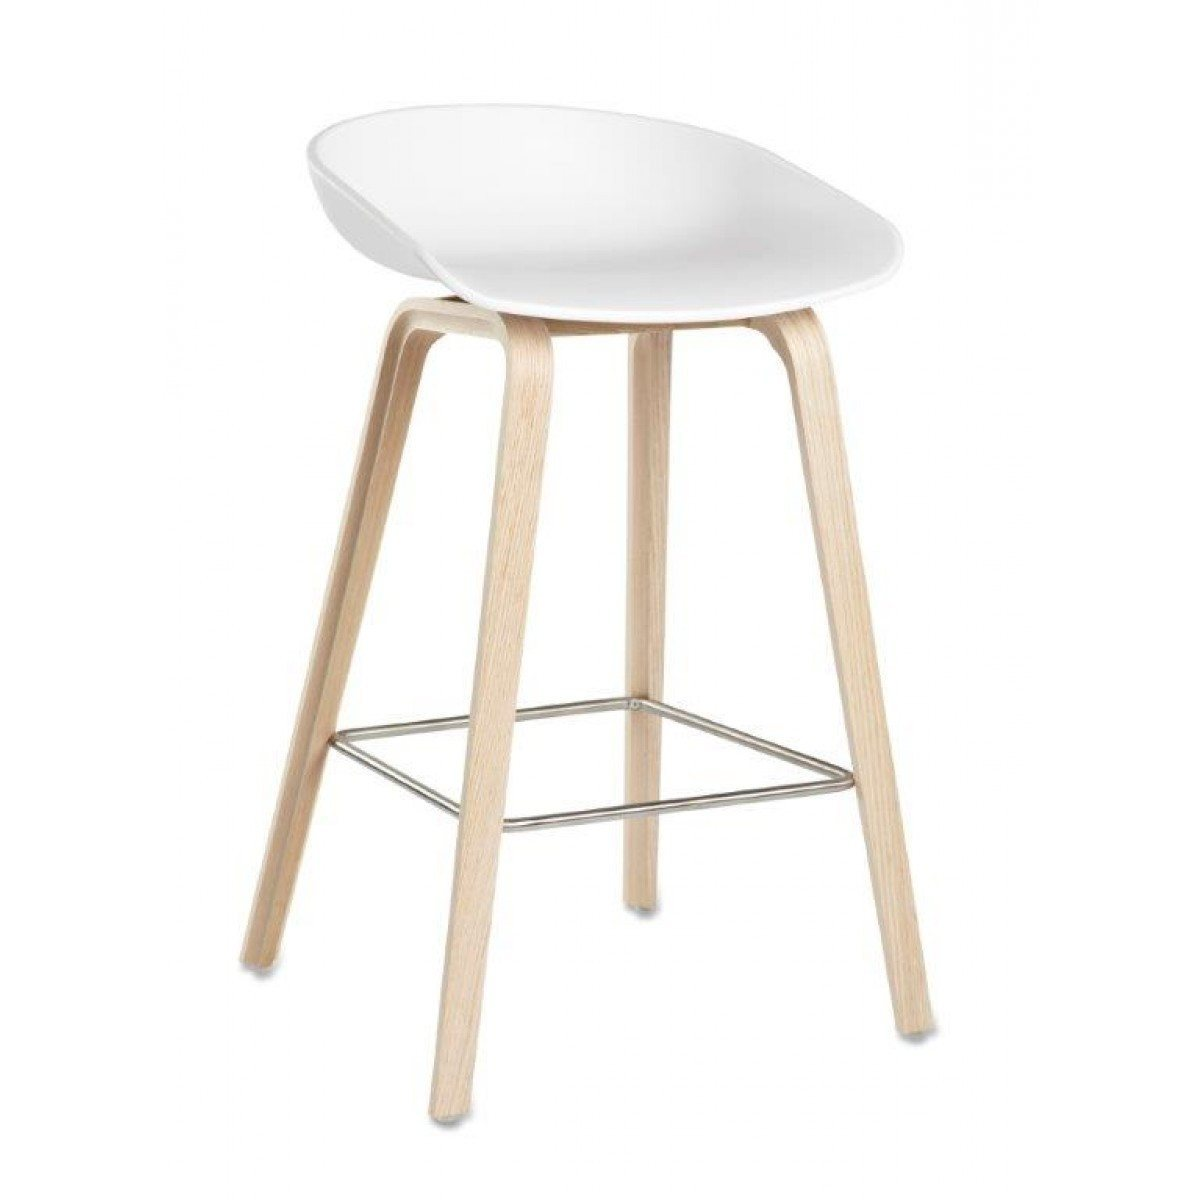 HAY ABOUT A STOOL AAS32 - Eclectic Cool  - 3